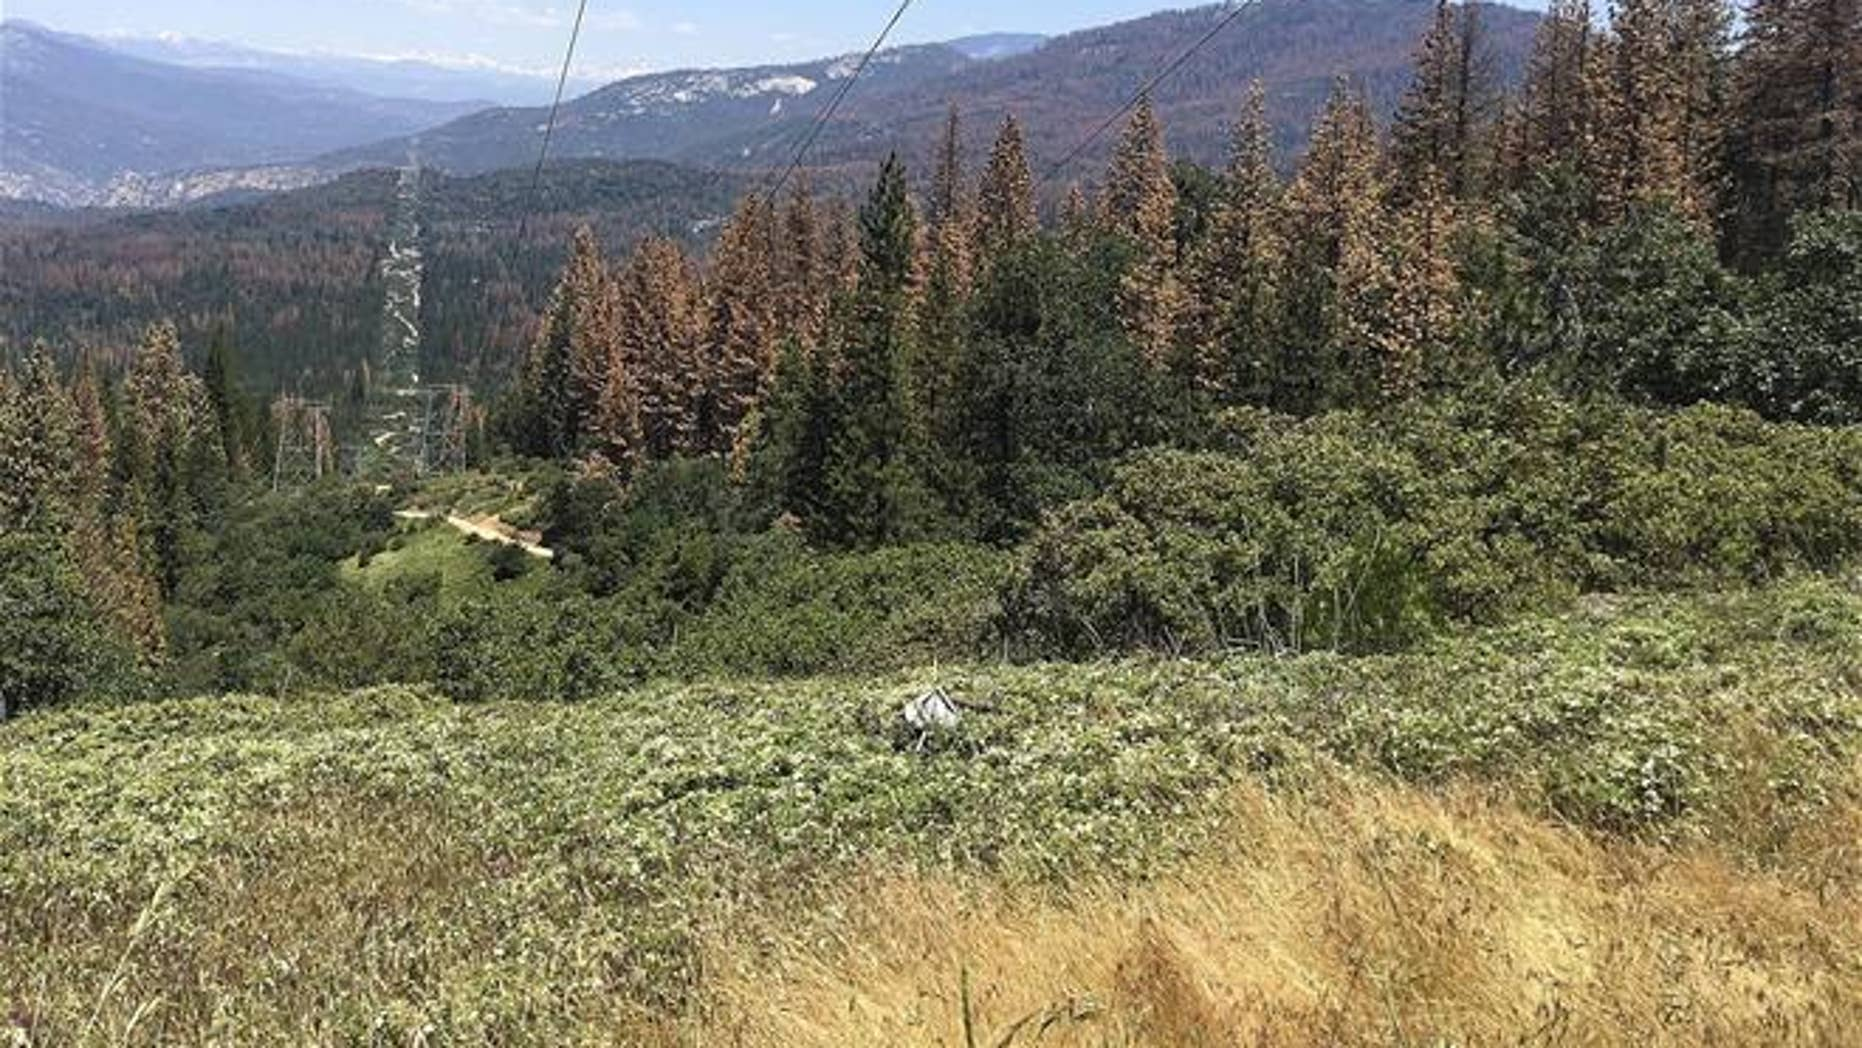 This June 6, 2016 photo shows patches of dead and dying trees near Cressman, Calif. More than 100 million trees have died in the state over the past six years.